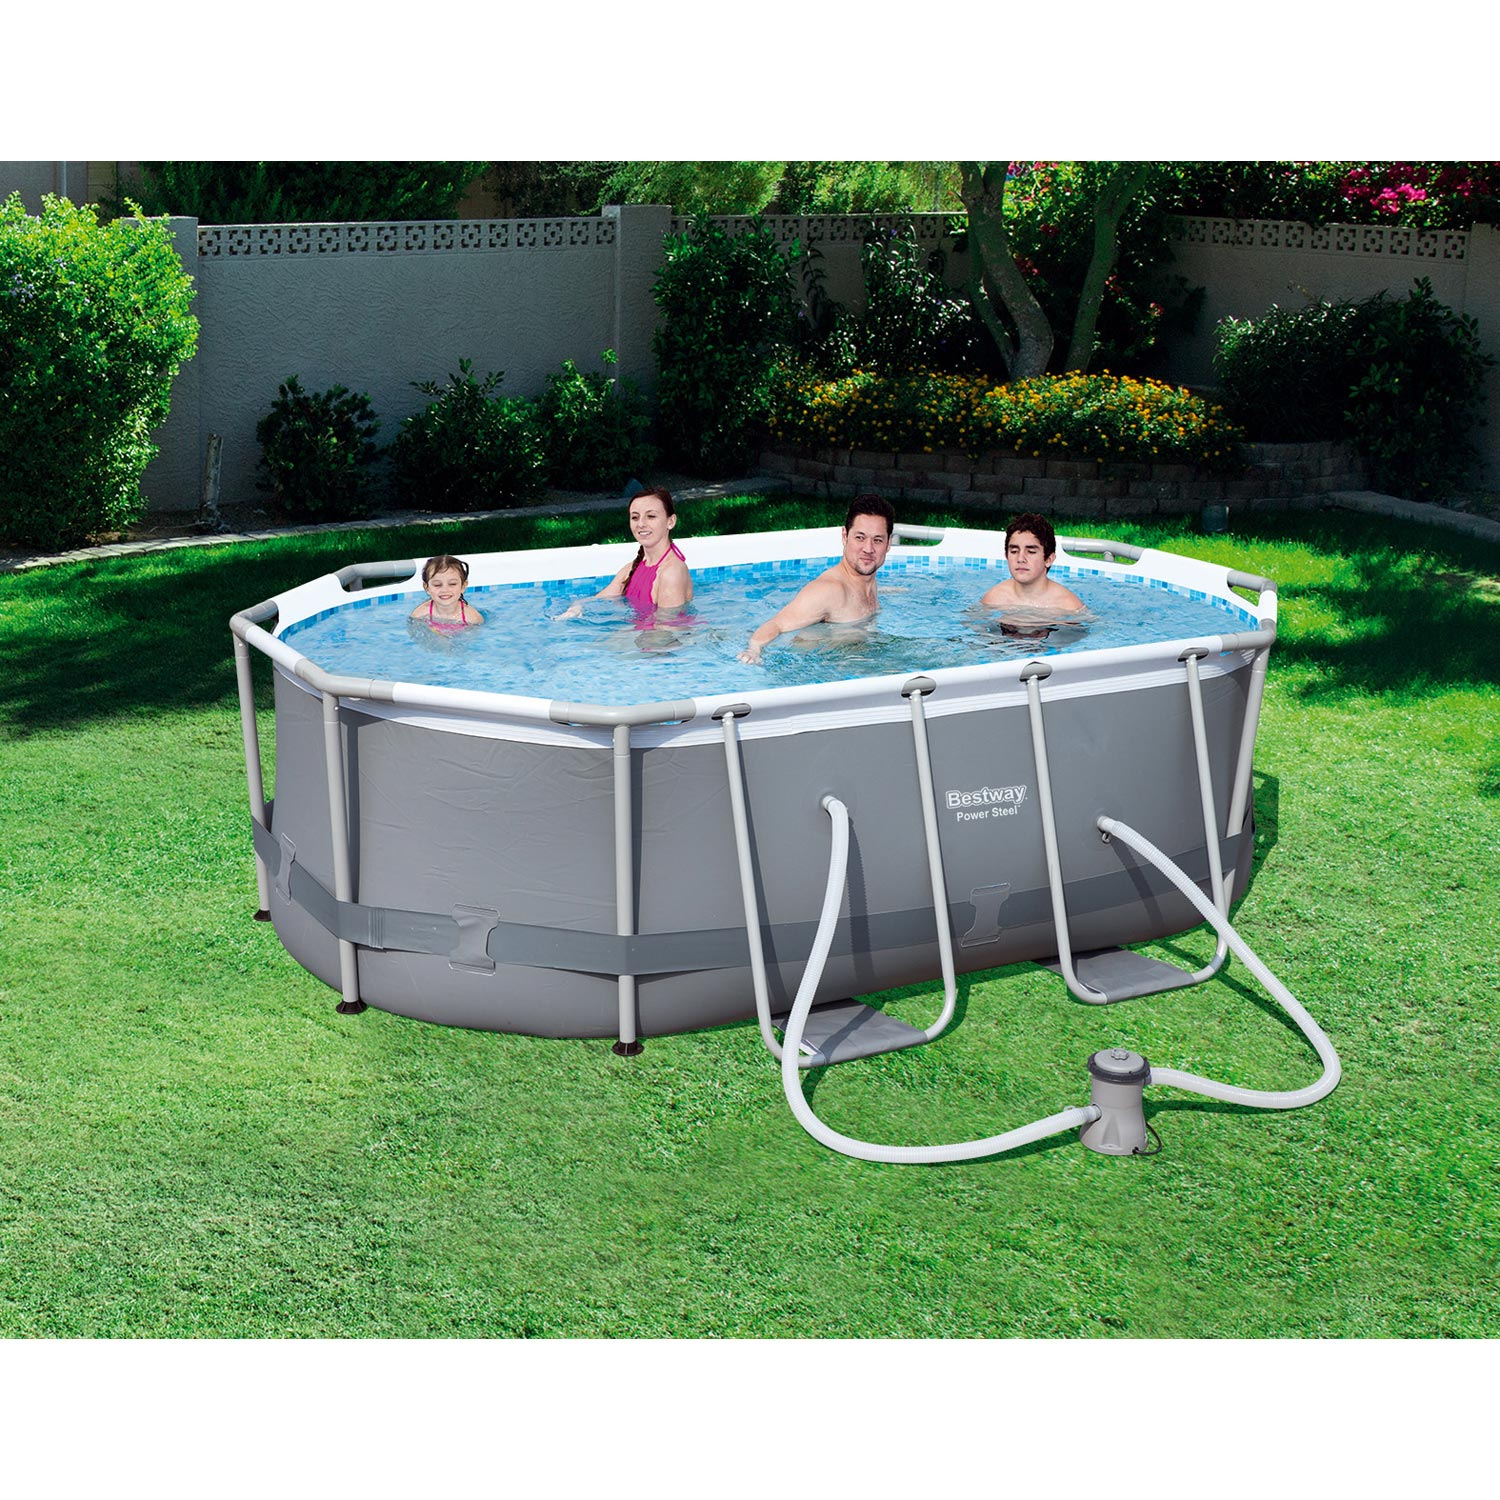 Piscine hors sol autoportante tubulaire bestway l 3 x l 2 for Piscine tubulaire rectangulaire